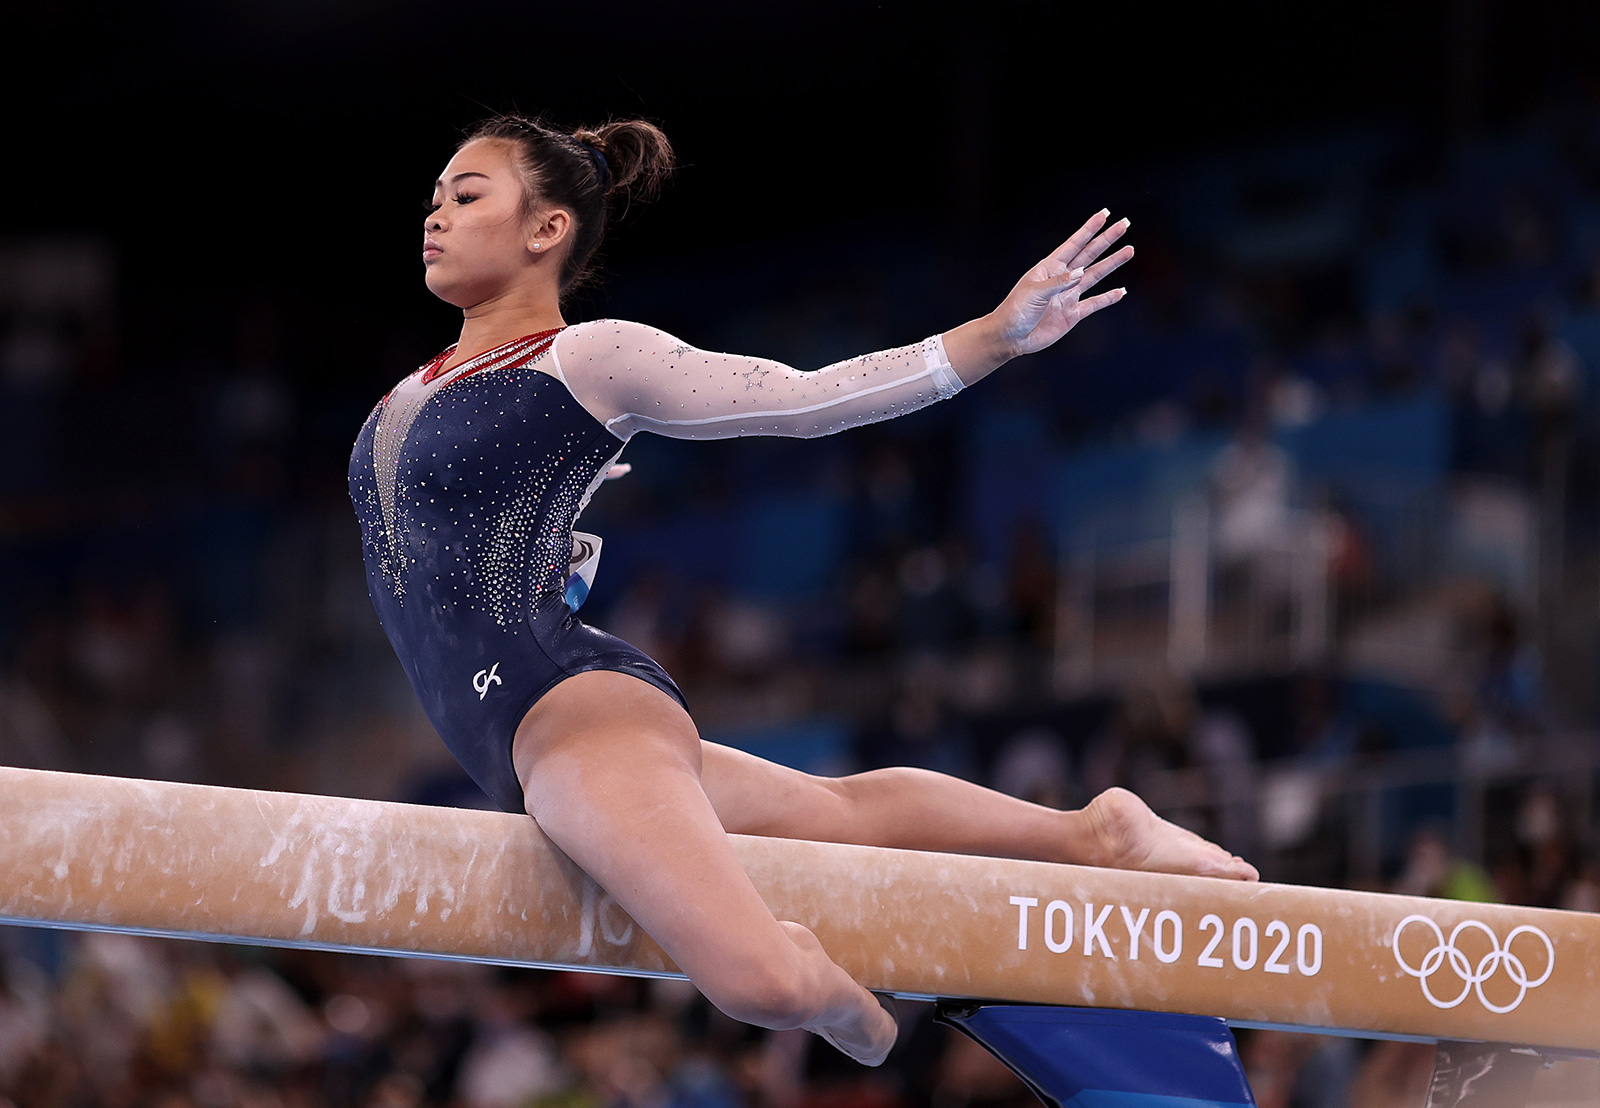 Team USA's Sunisa Lee competes on balance beam during the Women's All-Around Final on July 29.